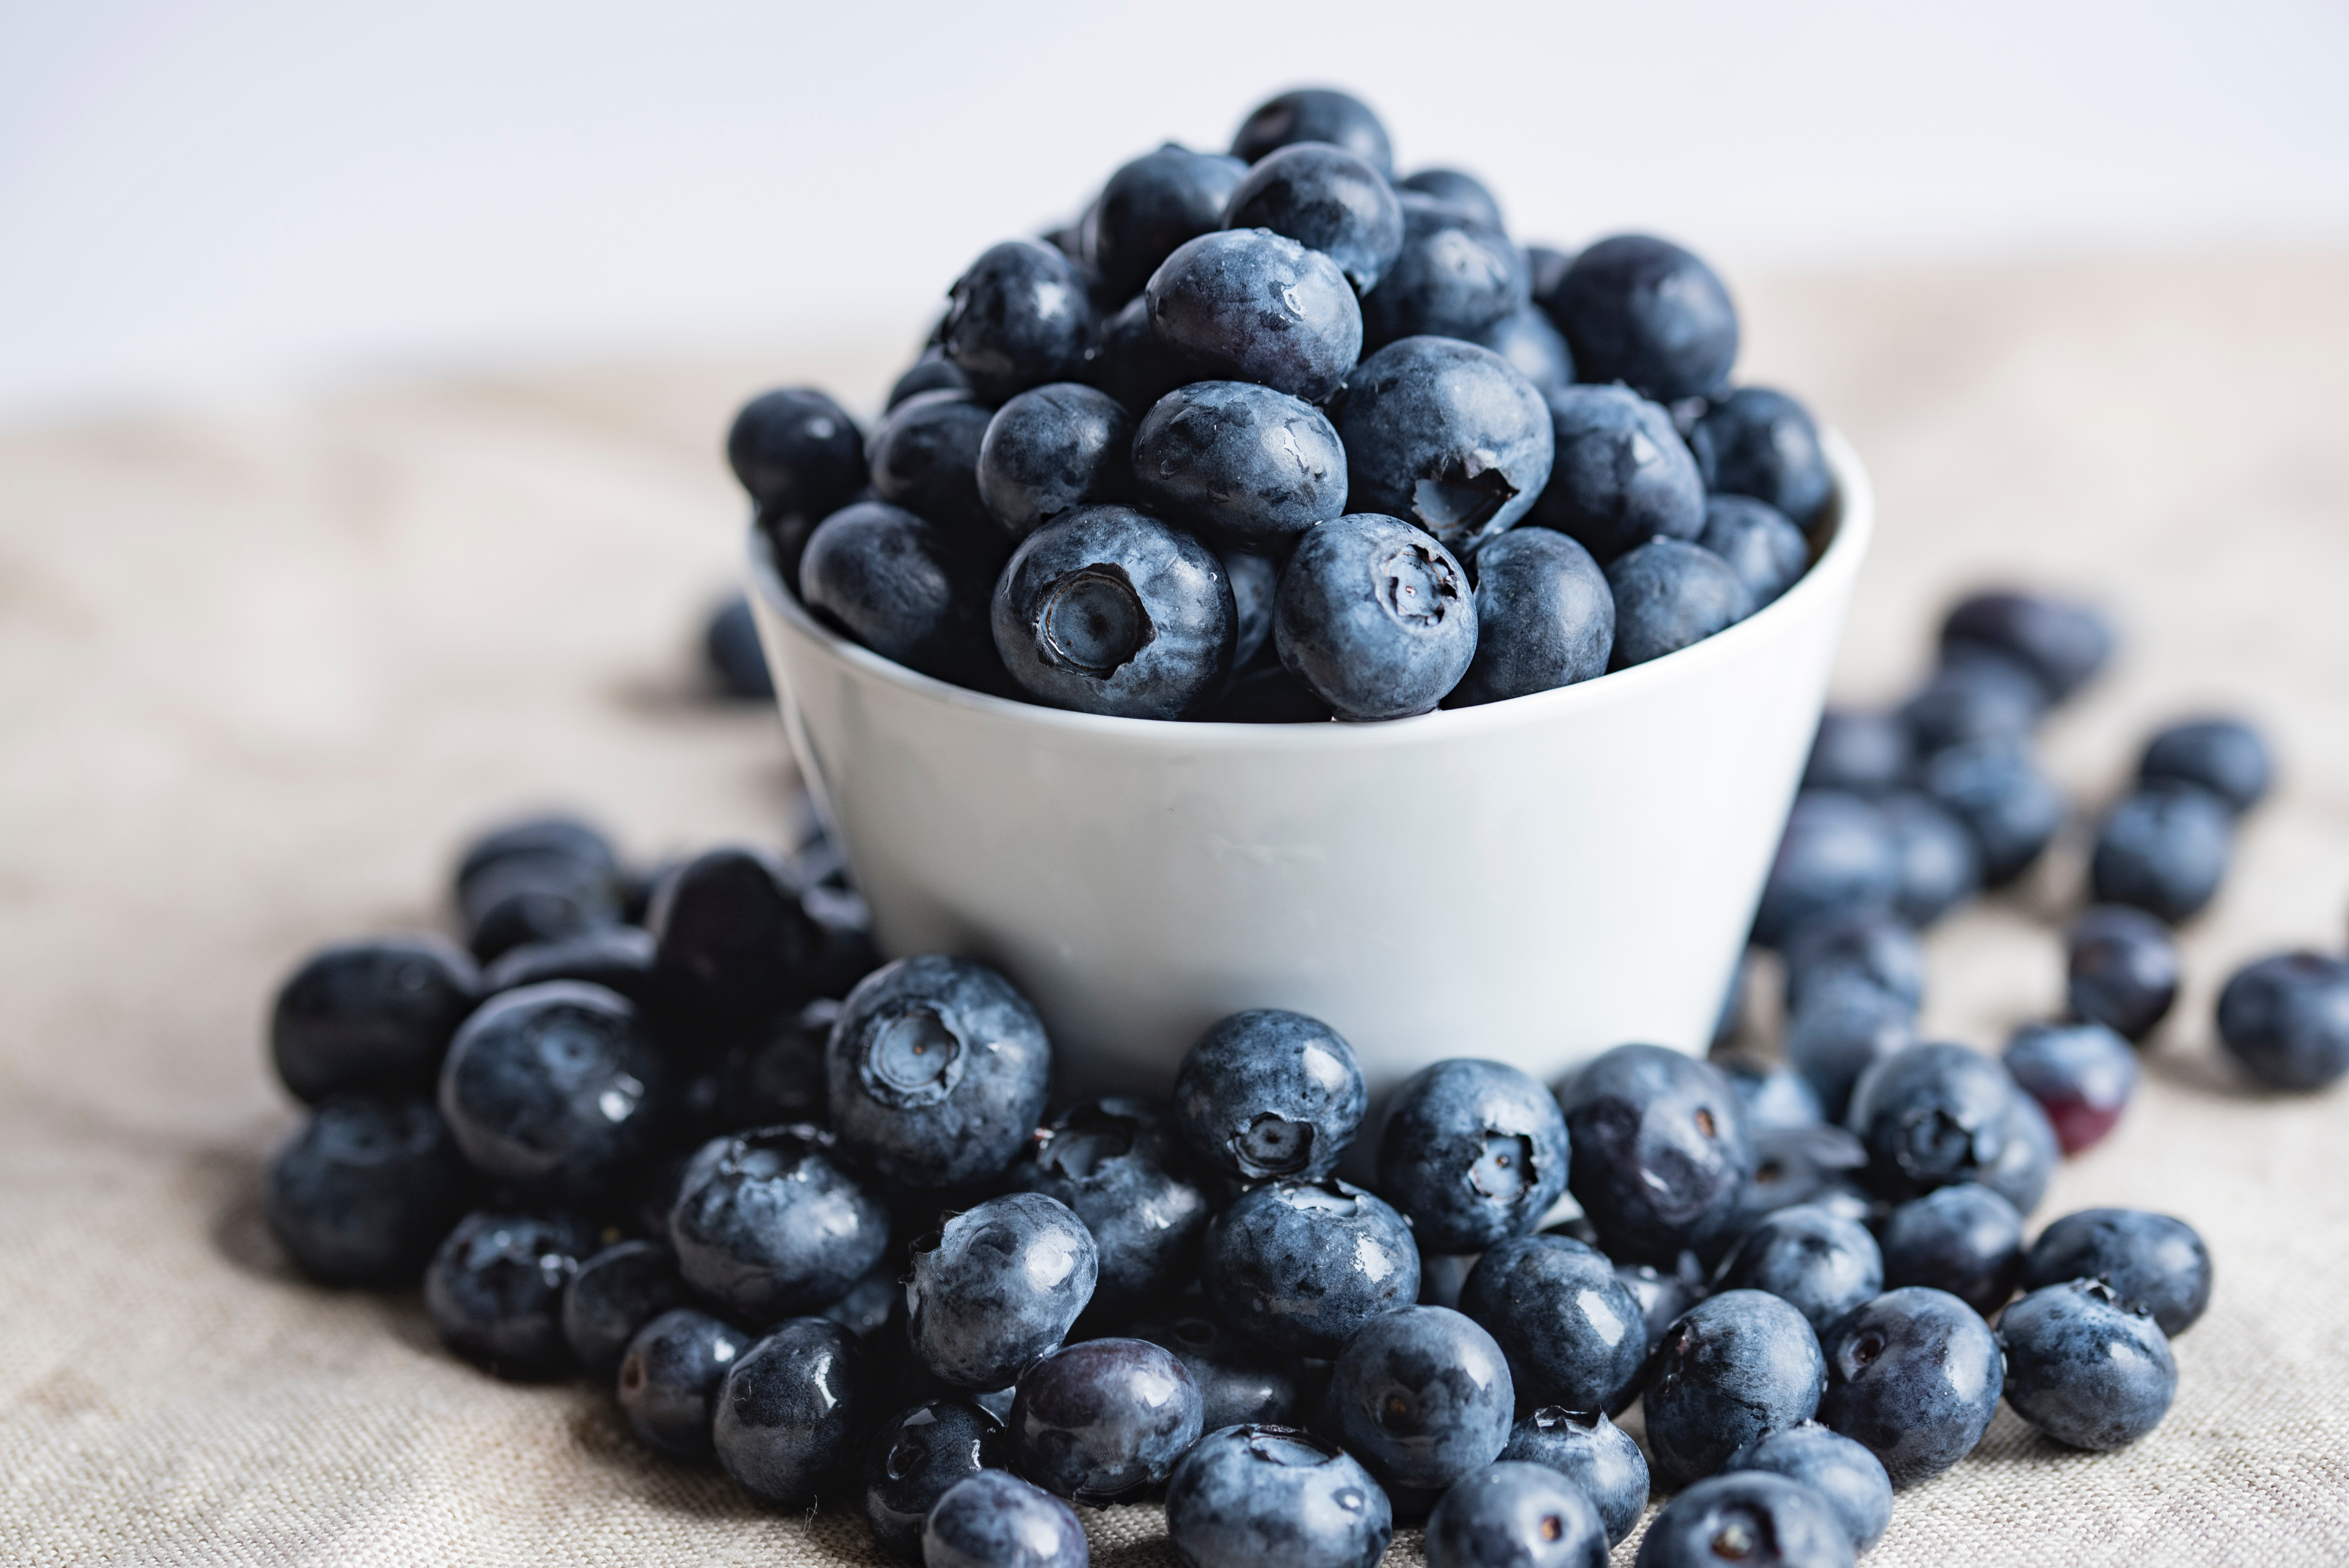 Chilean blueberries aim to replace popcorn in Chinese cinemas 34d2278265c